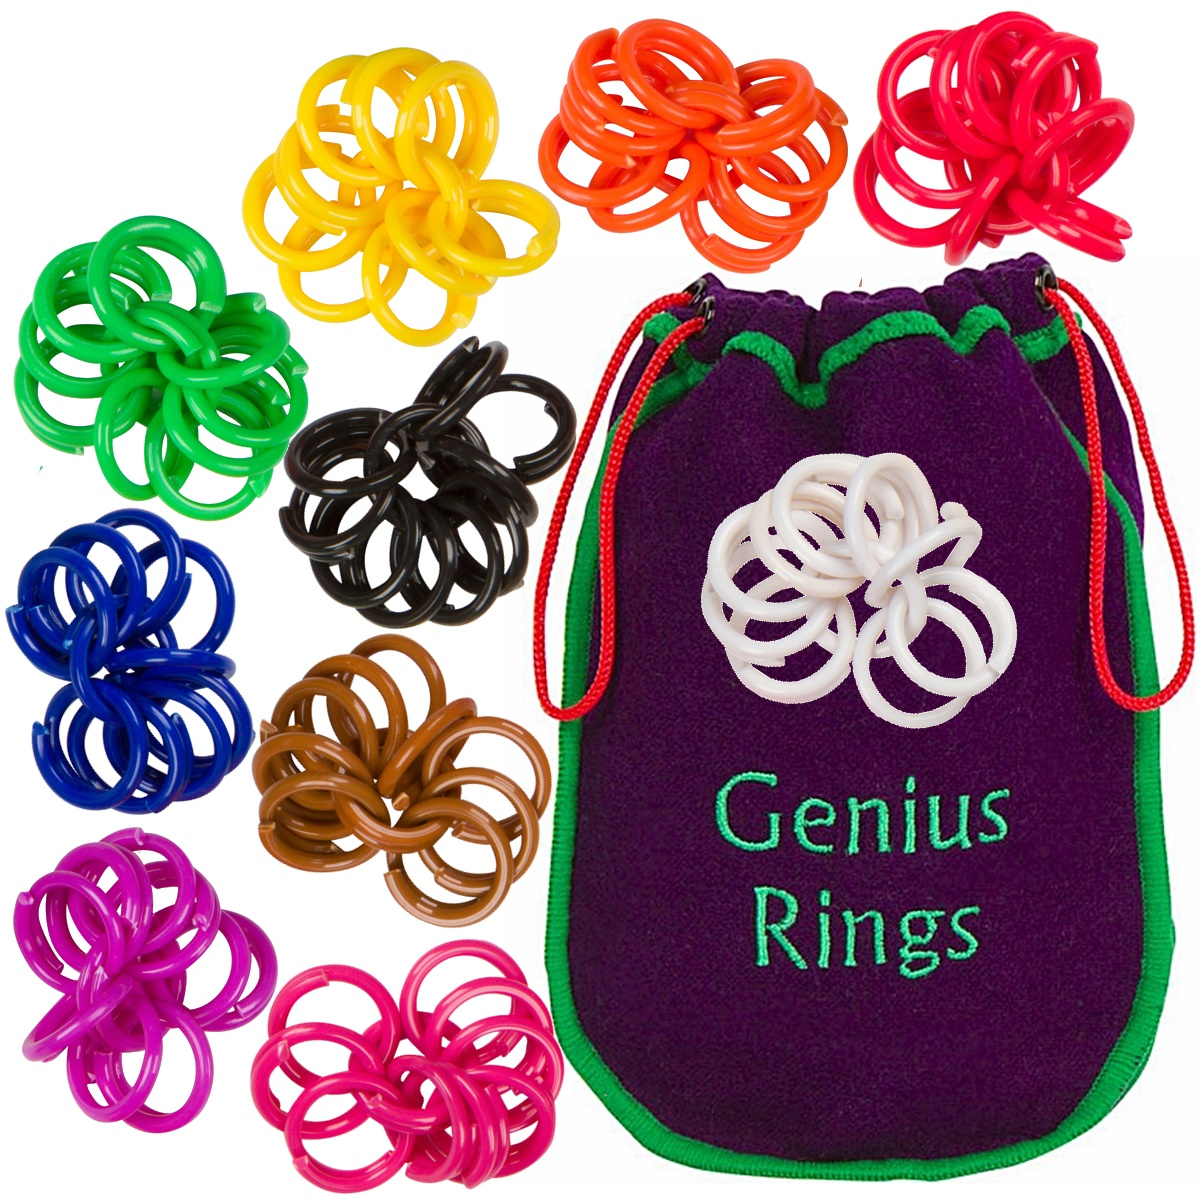 Genius Rings Chinese Jacks Toy Educational Math Counting Rings by Genius Baby Project